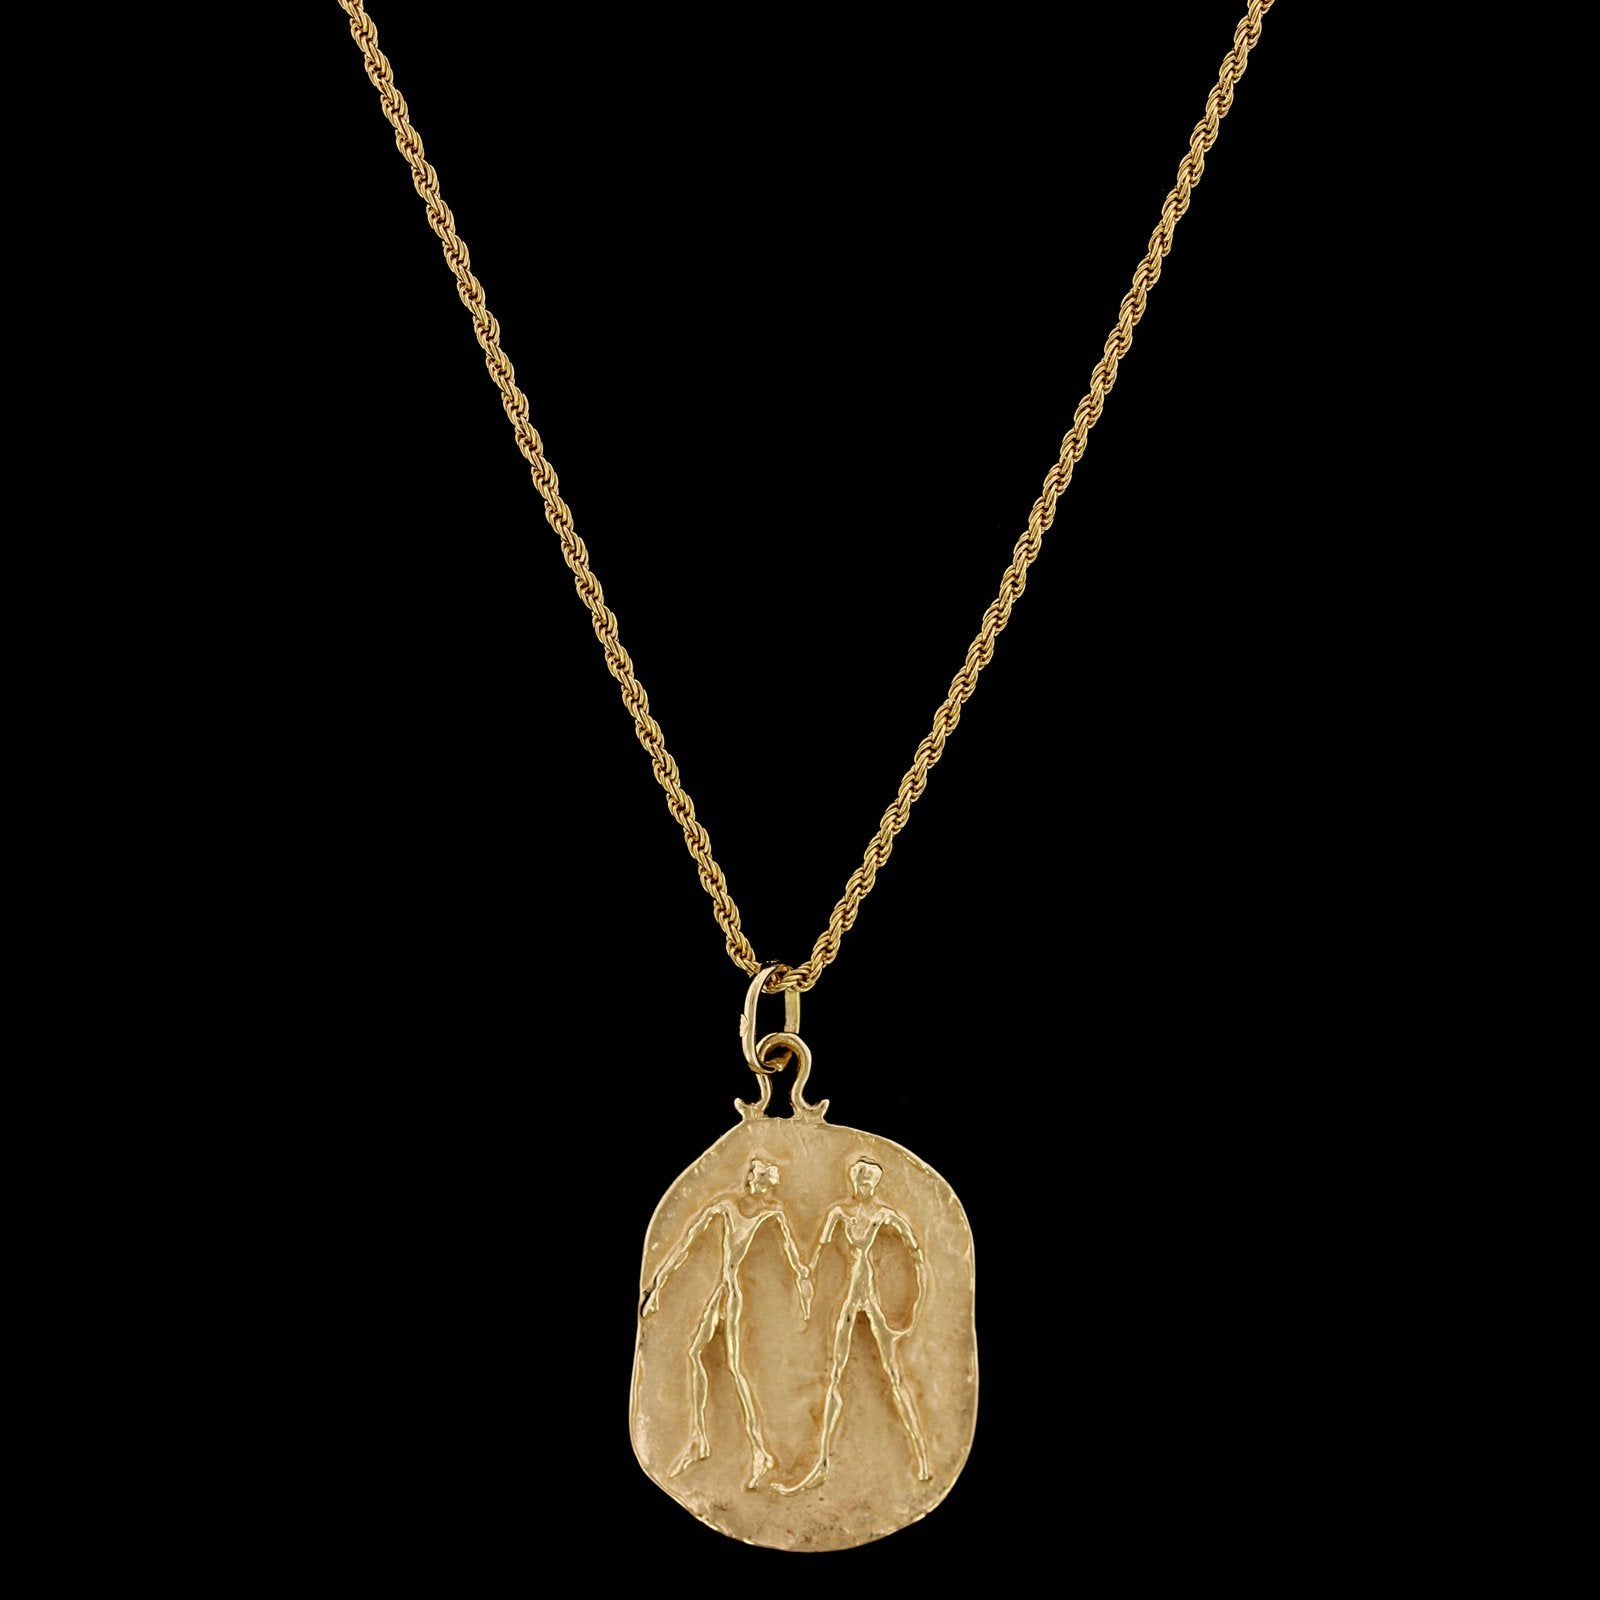 14K Yellow Gold Estate Gemini Zodiac Pendant